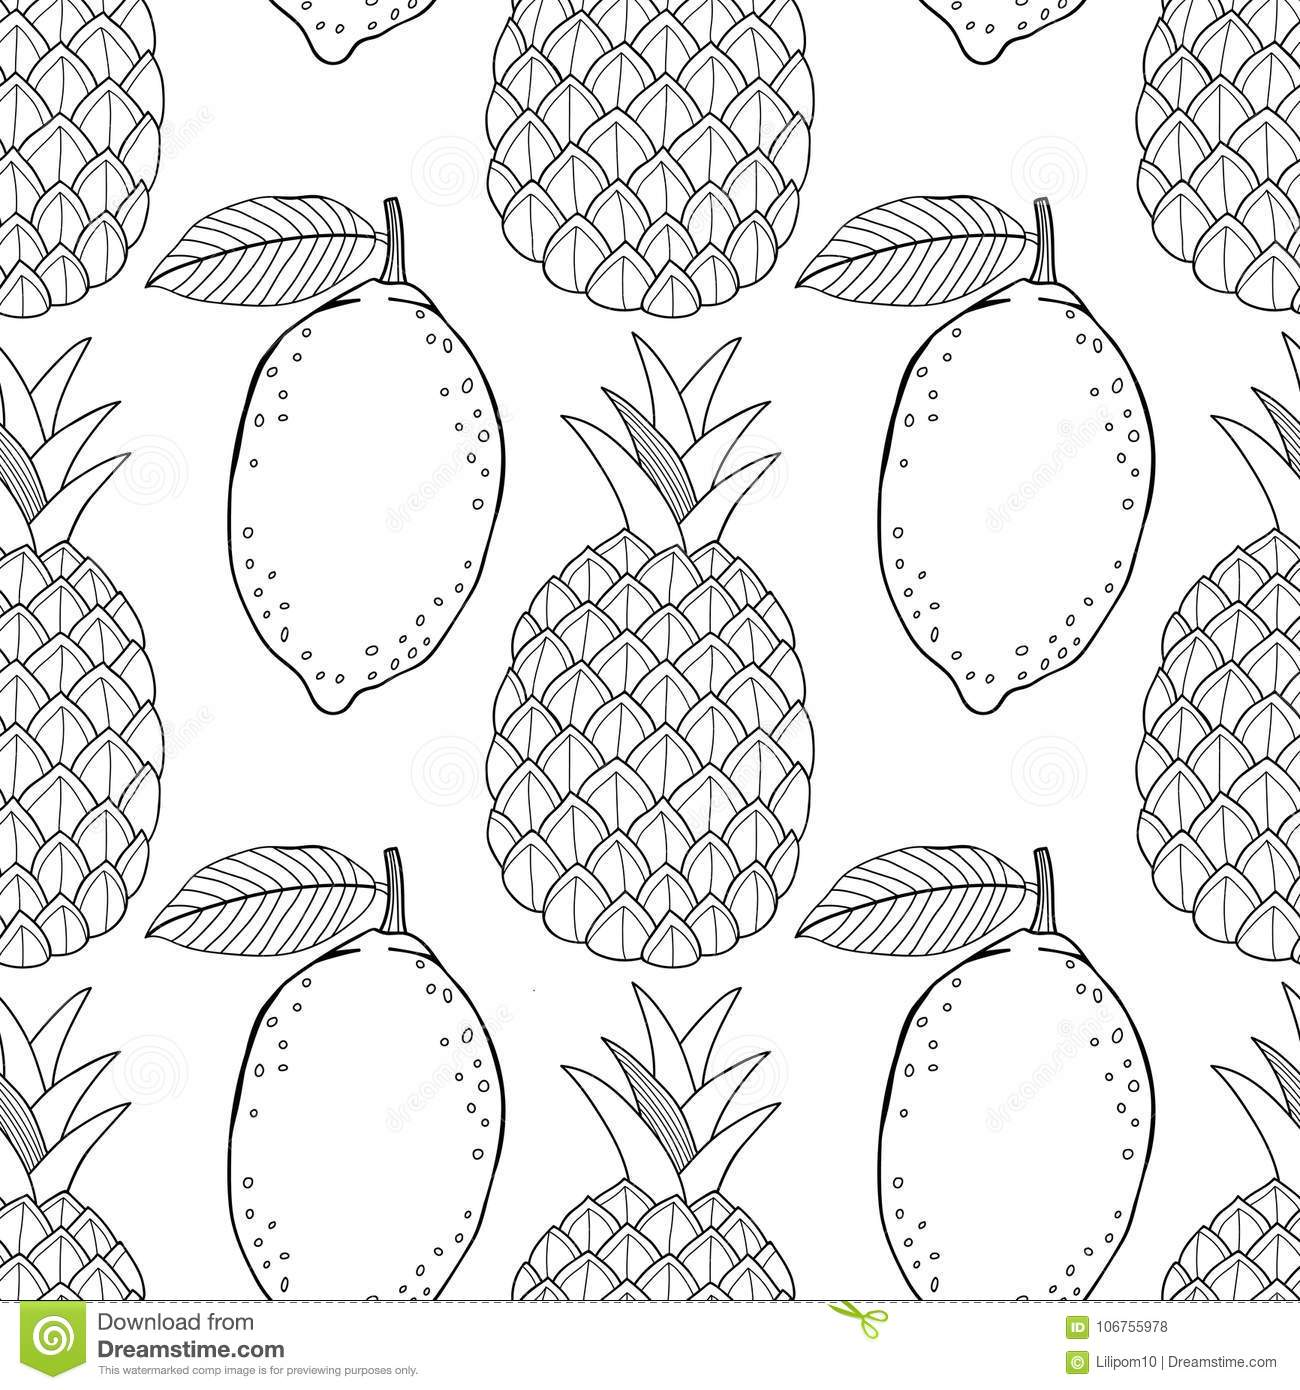 Lemon Coloring Pages - Best Coloring Pages For Kids | 1390x1300